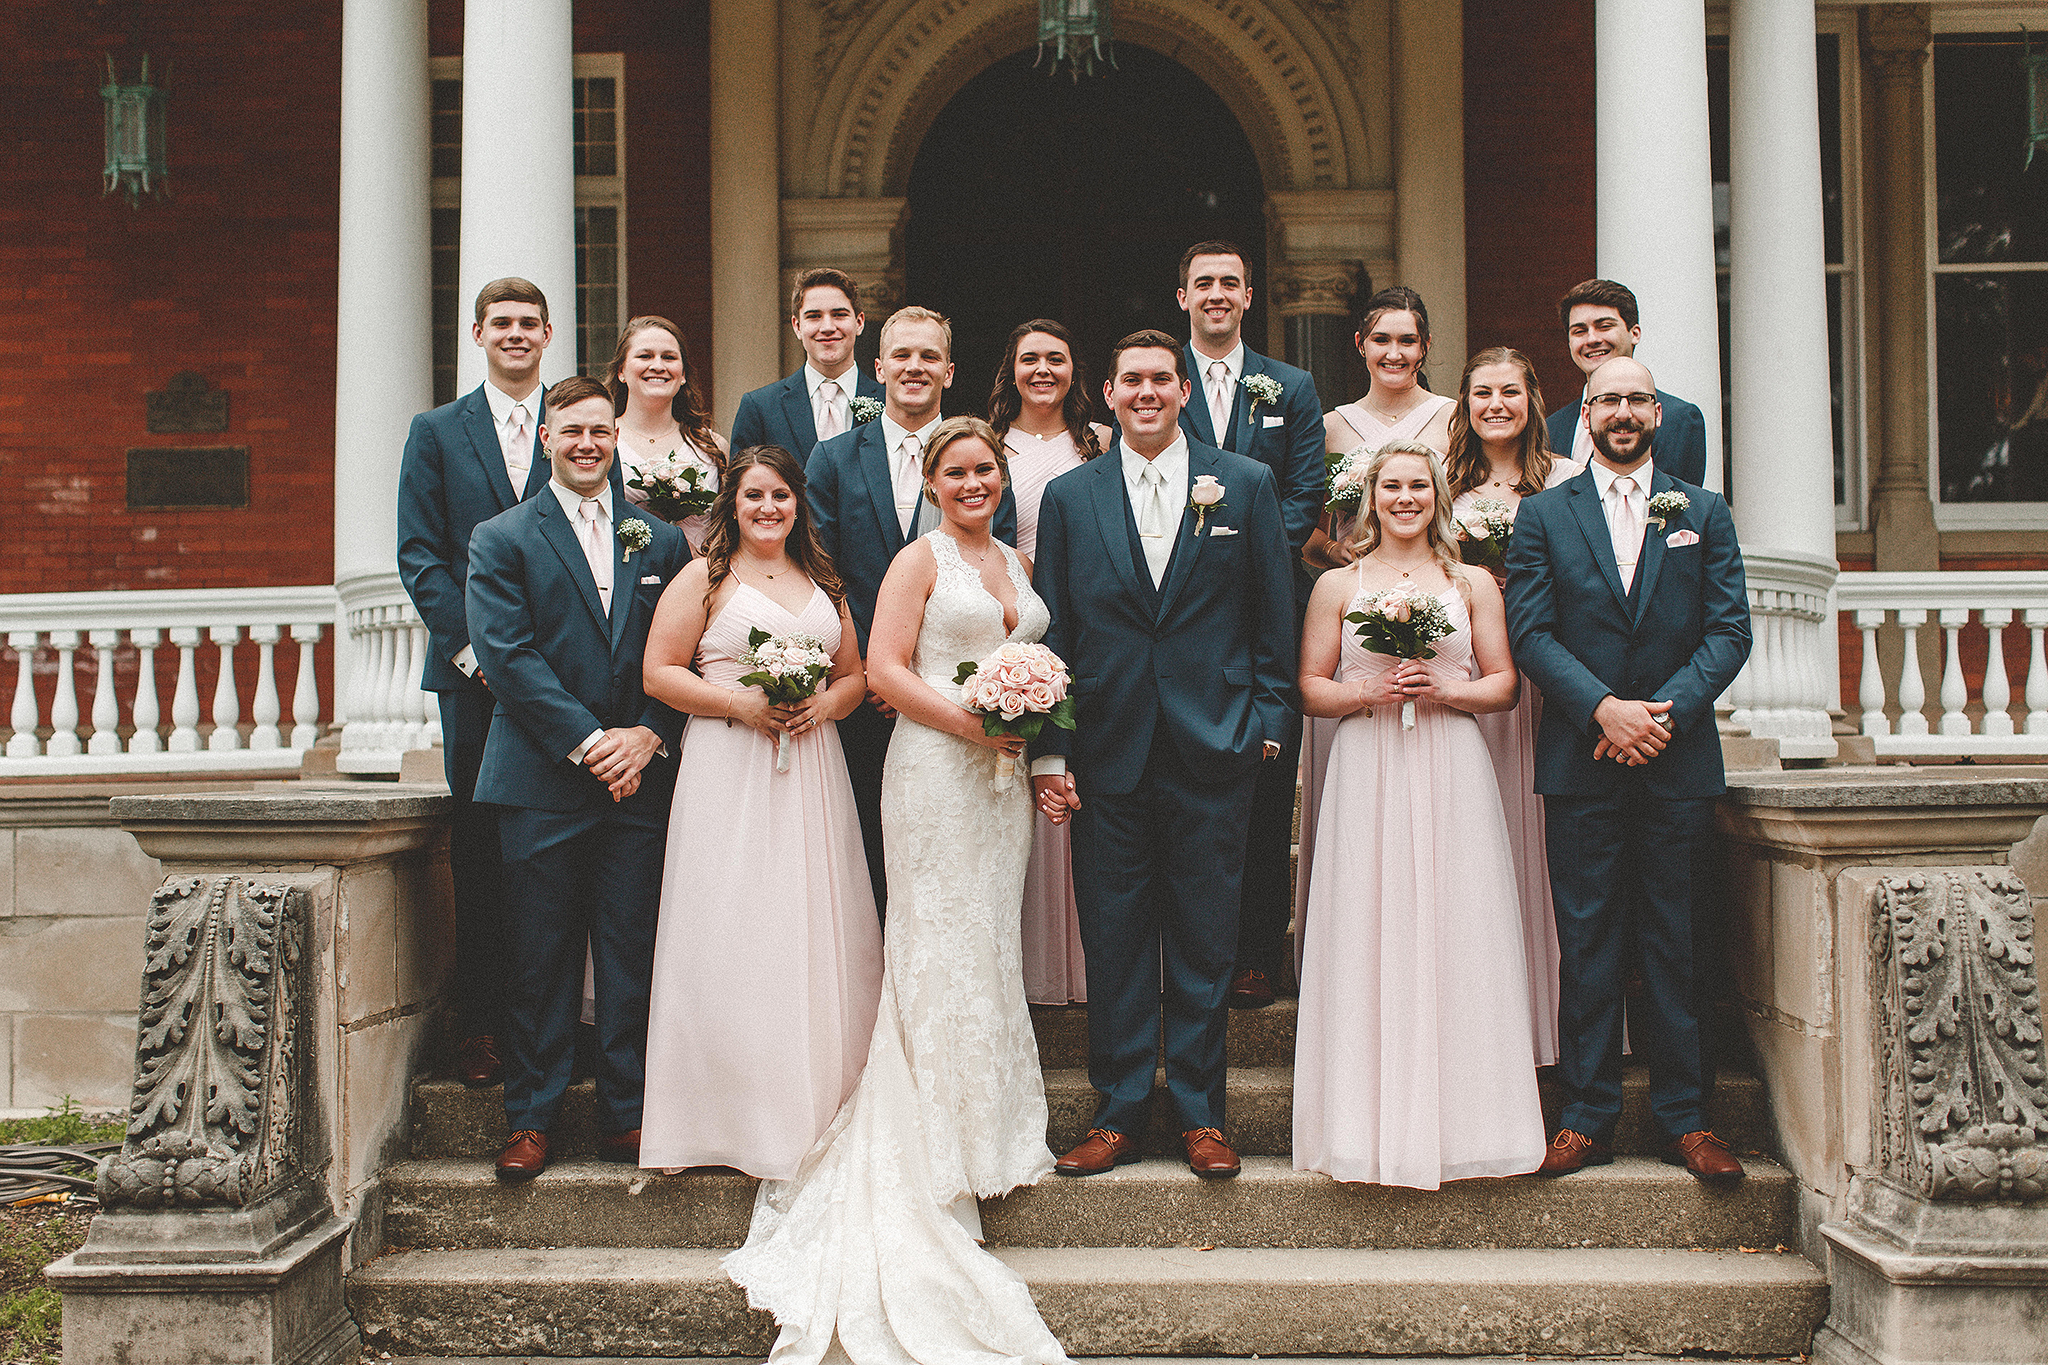 wedding party pictures on steps of ellwood house | dekalb, il wedding photographer | chrissy deming